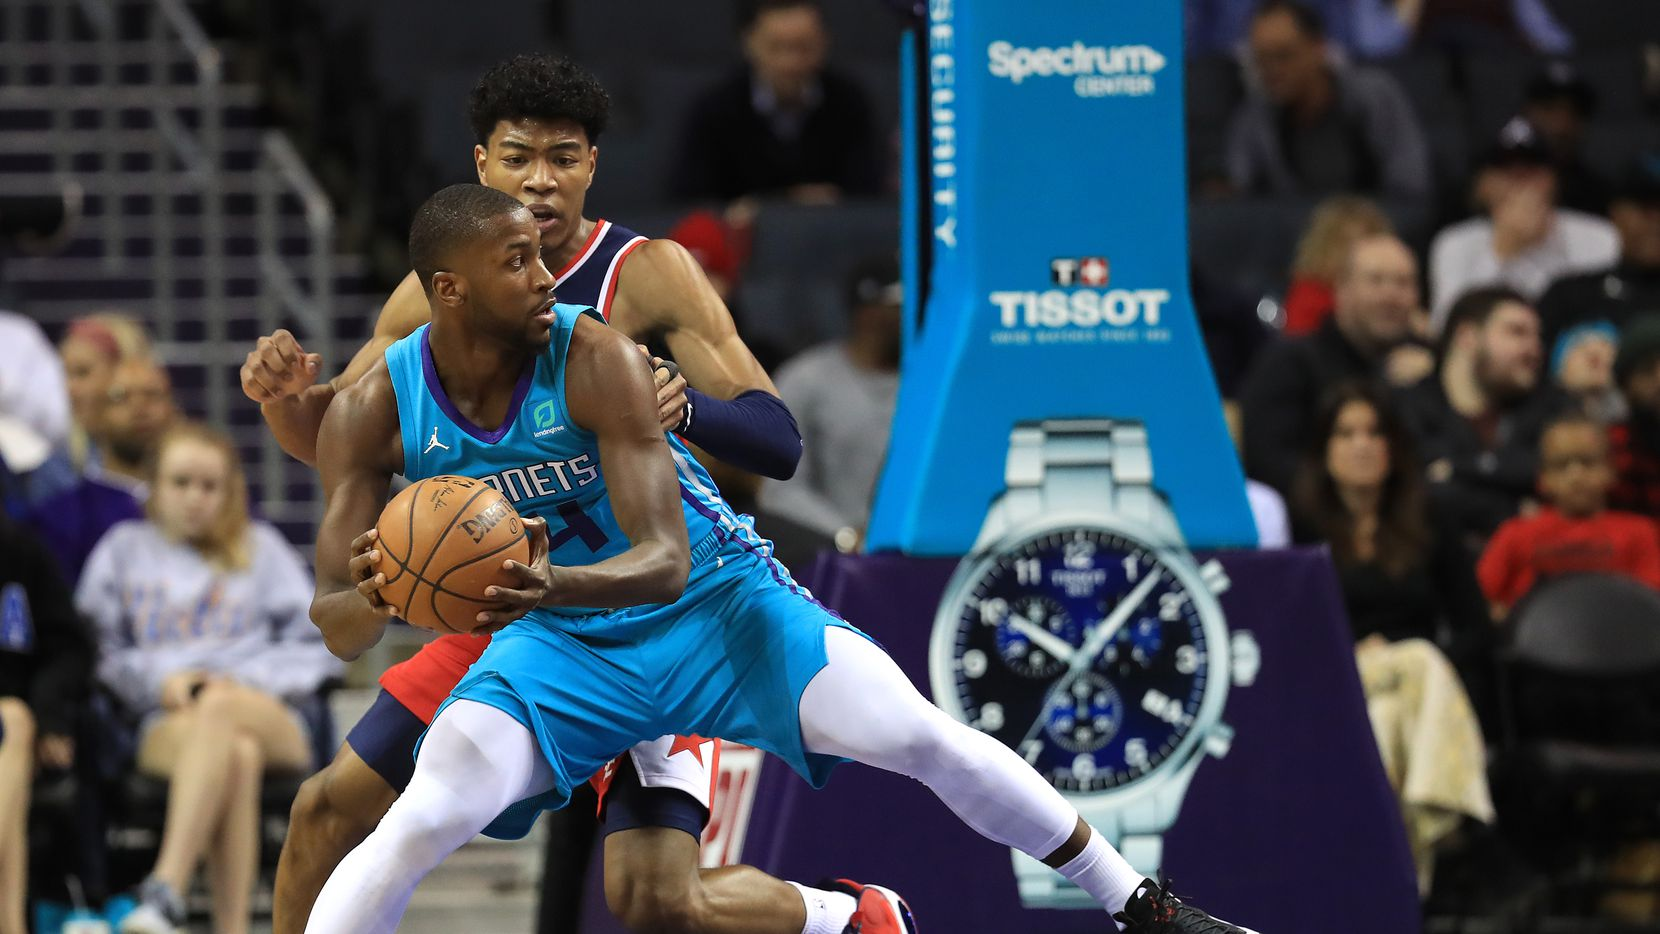 CHARLOTTE, NORTH CAROLINA - DECEMBER 10: Michael Kidd-Gilchrist #14 of the Charlotte Hornets drives to the basket against Rui Hachimura #8 of the Washington Wizards during their game at Spectrum Center on December 10, 2019 in Charlotte, North Carolina.